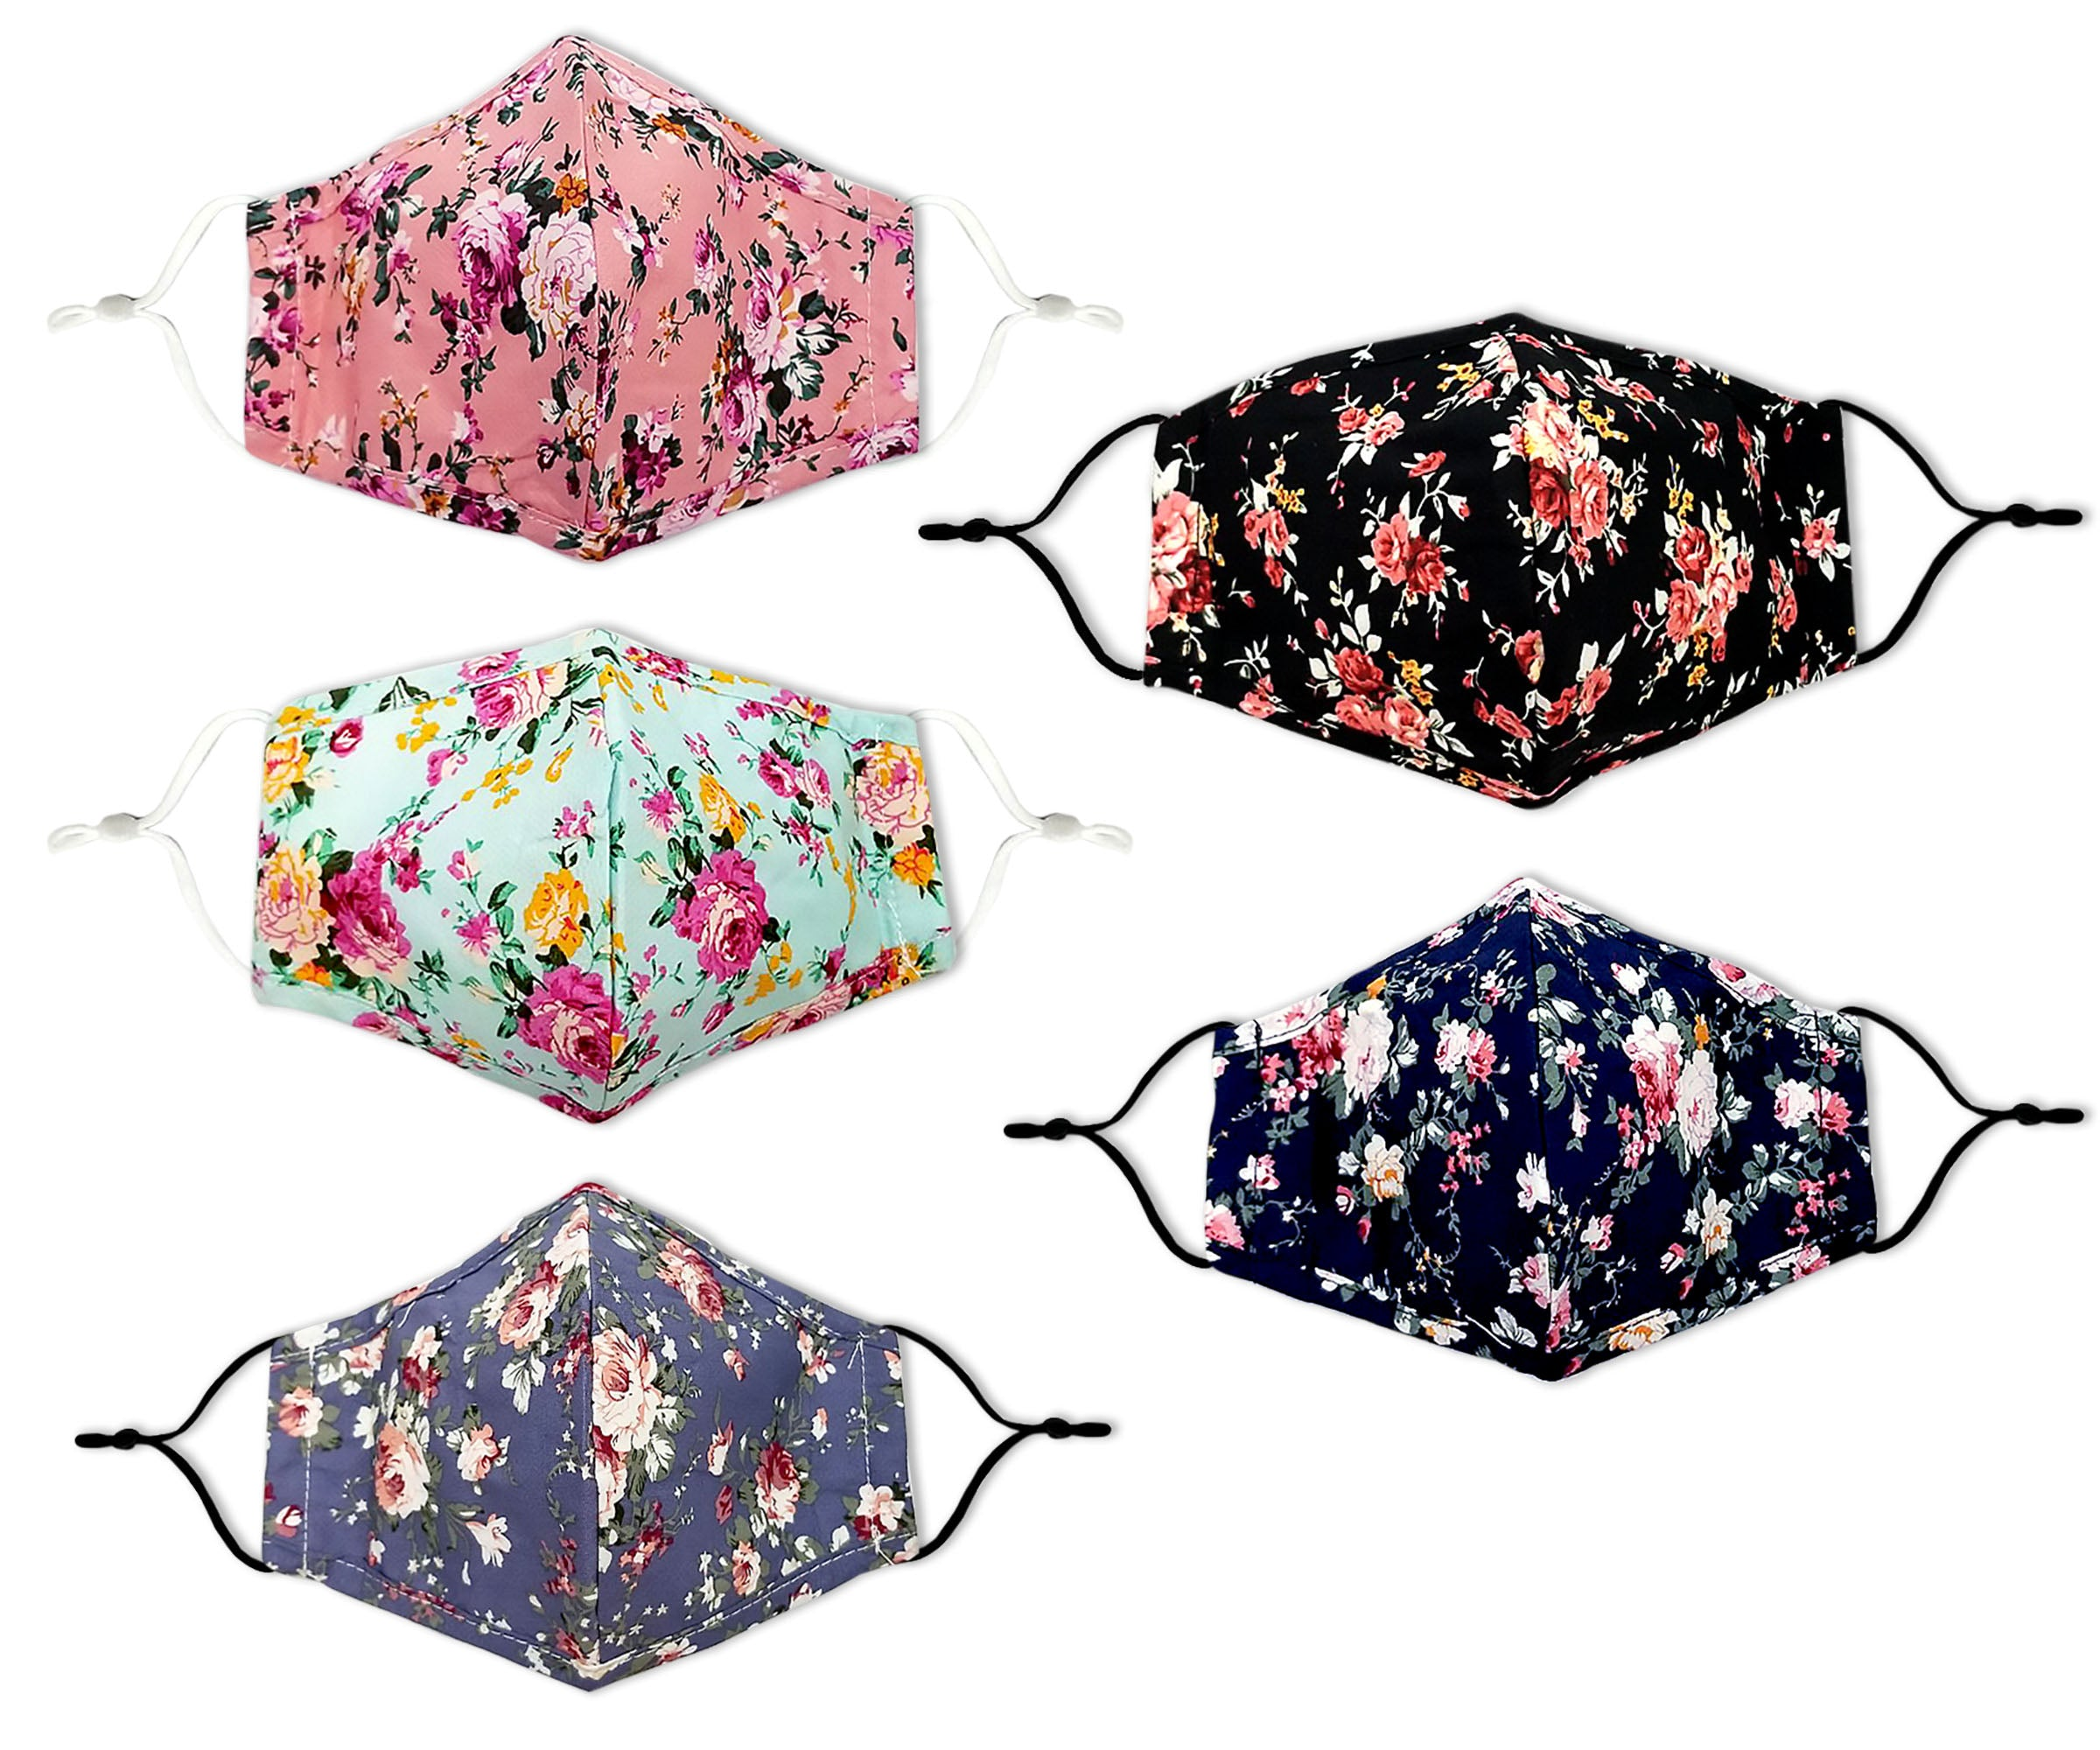 Flower Print Reusable Non- Medical Cotton Face Mask W/ Filter Pocket